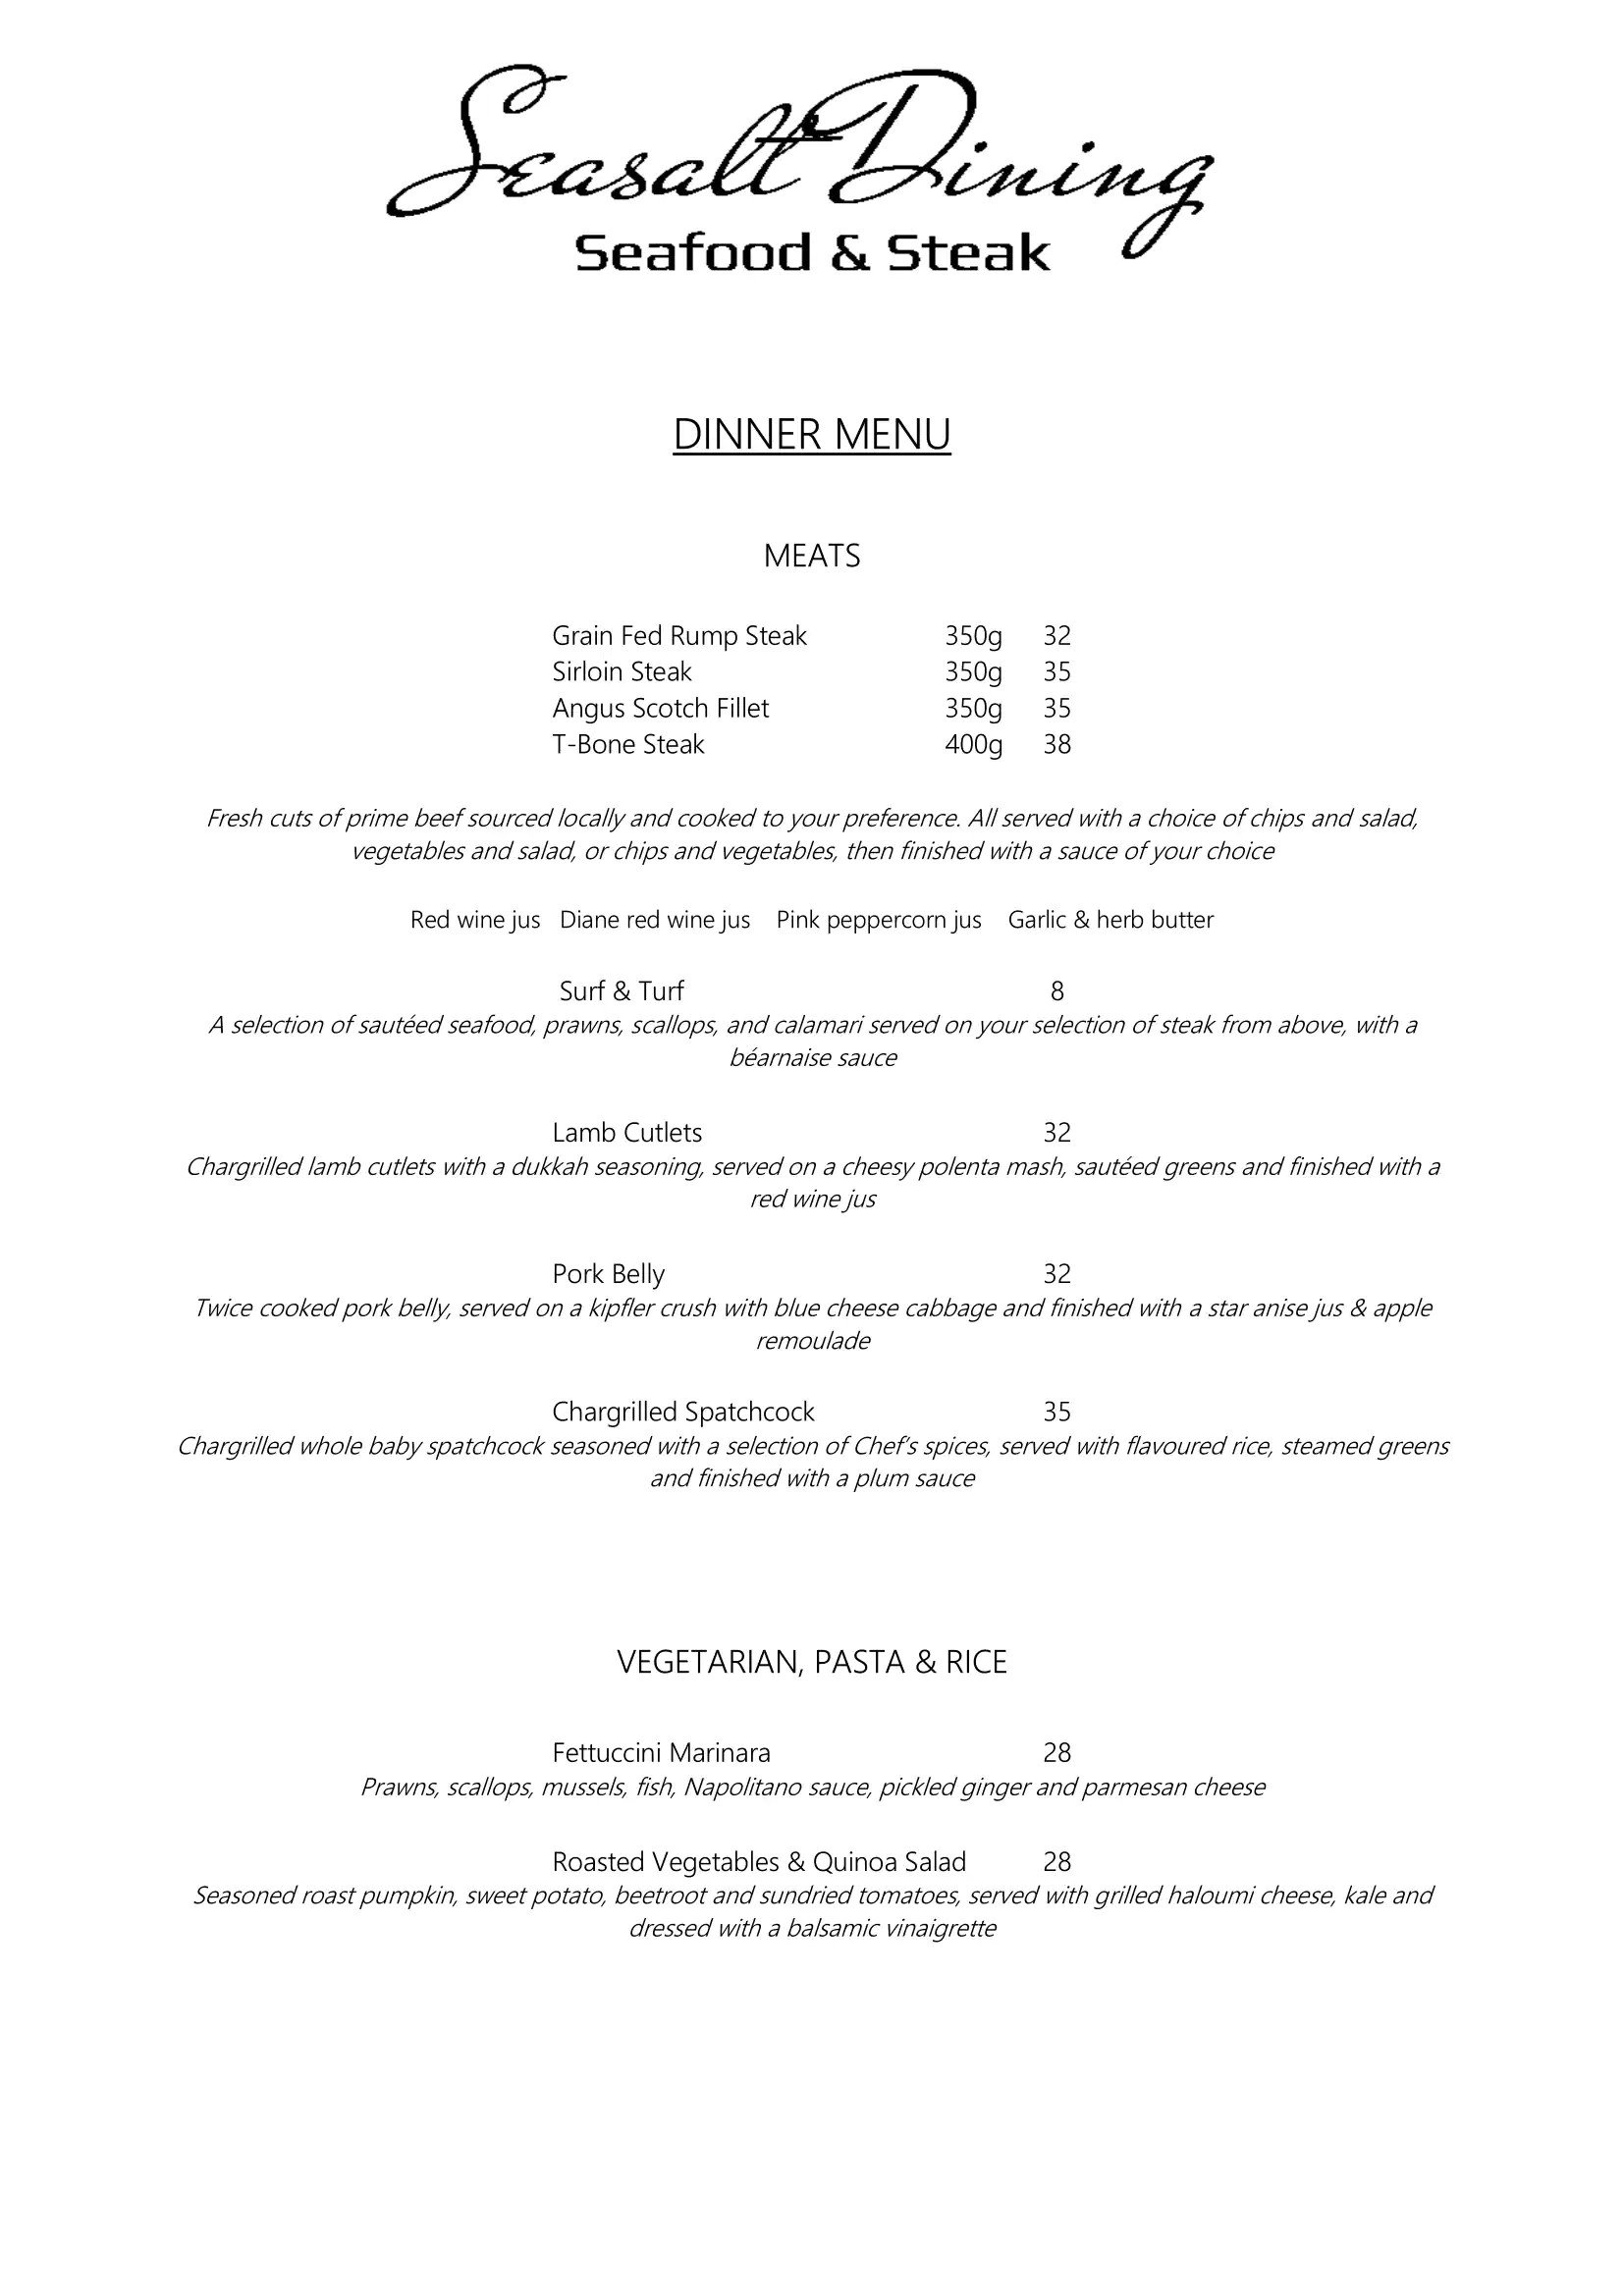 Dining Menu Seasalt Dining Menu Menu For Seasalt Dining Bruce Act